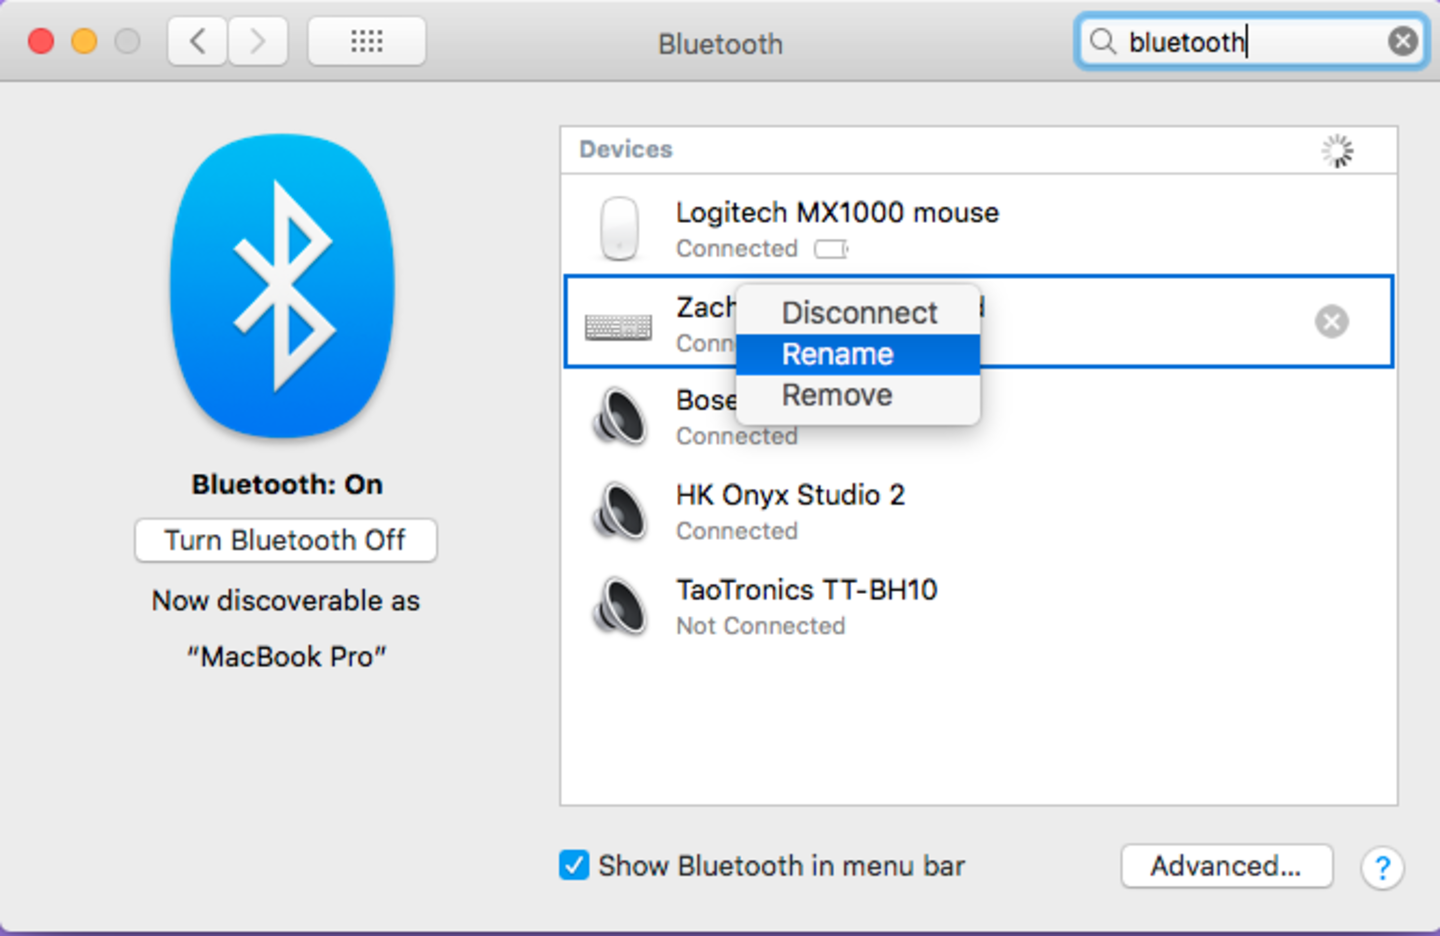 Renaming other bluetooth devices/accessories in MacOS and OS X